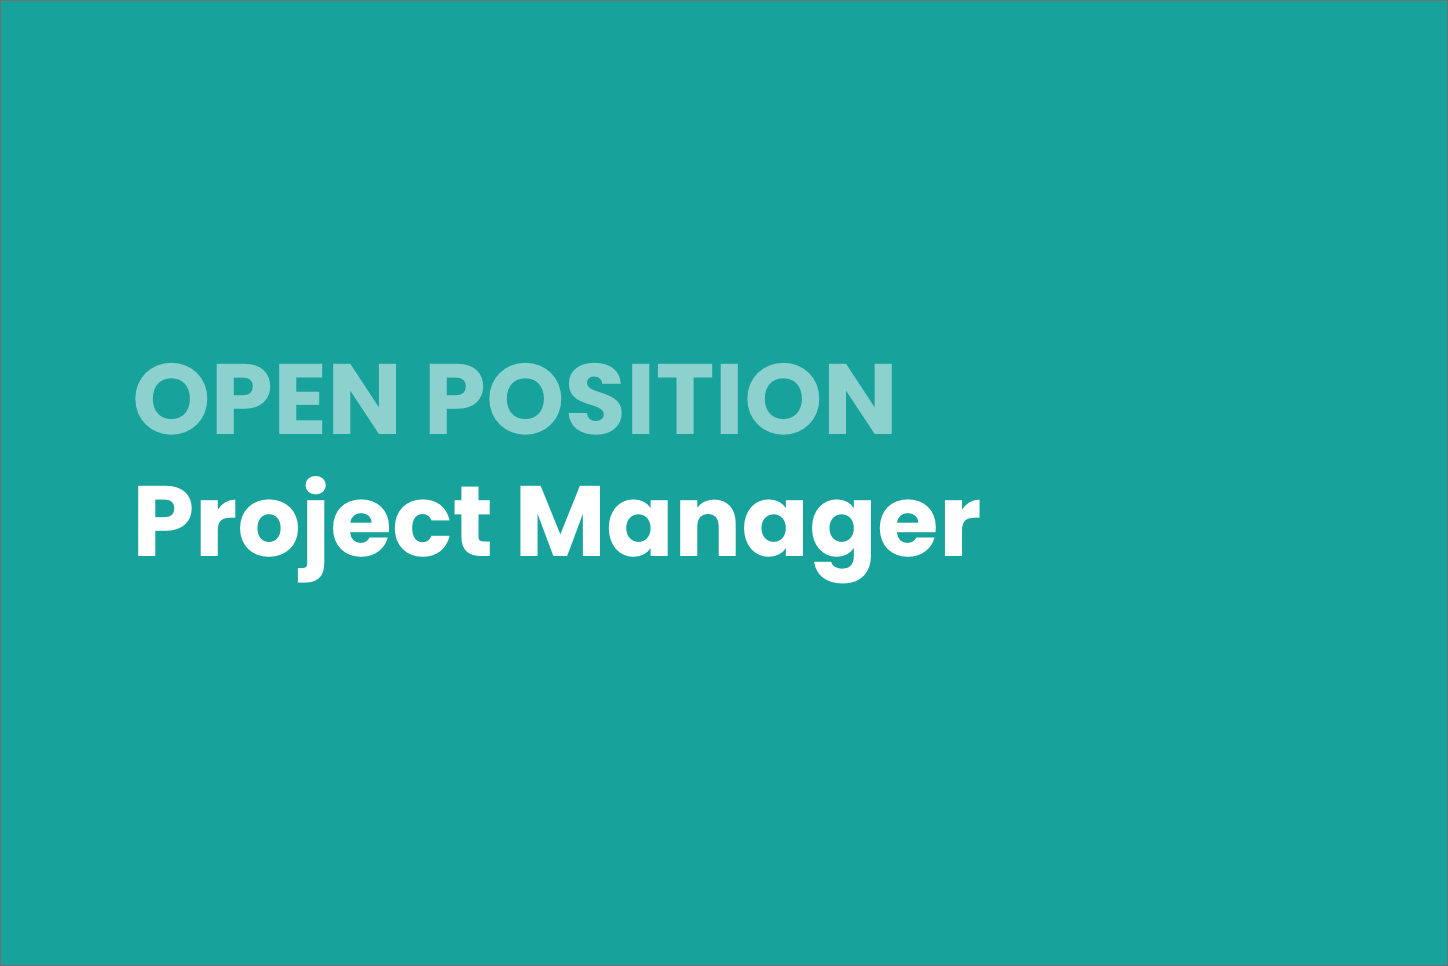 Open Listing: Project Manager